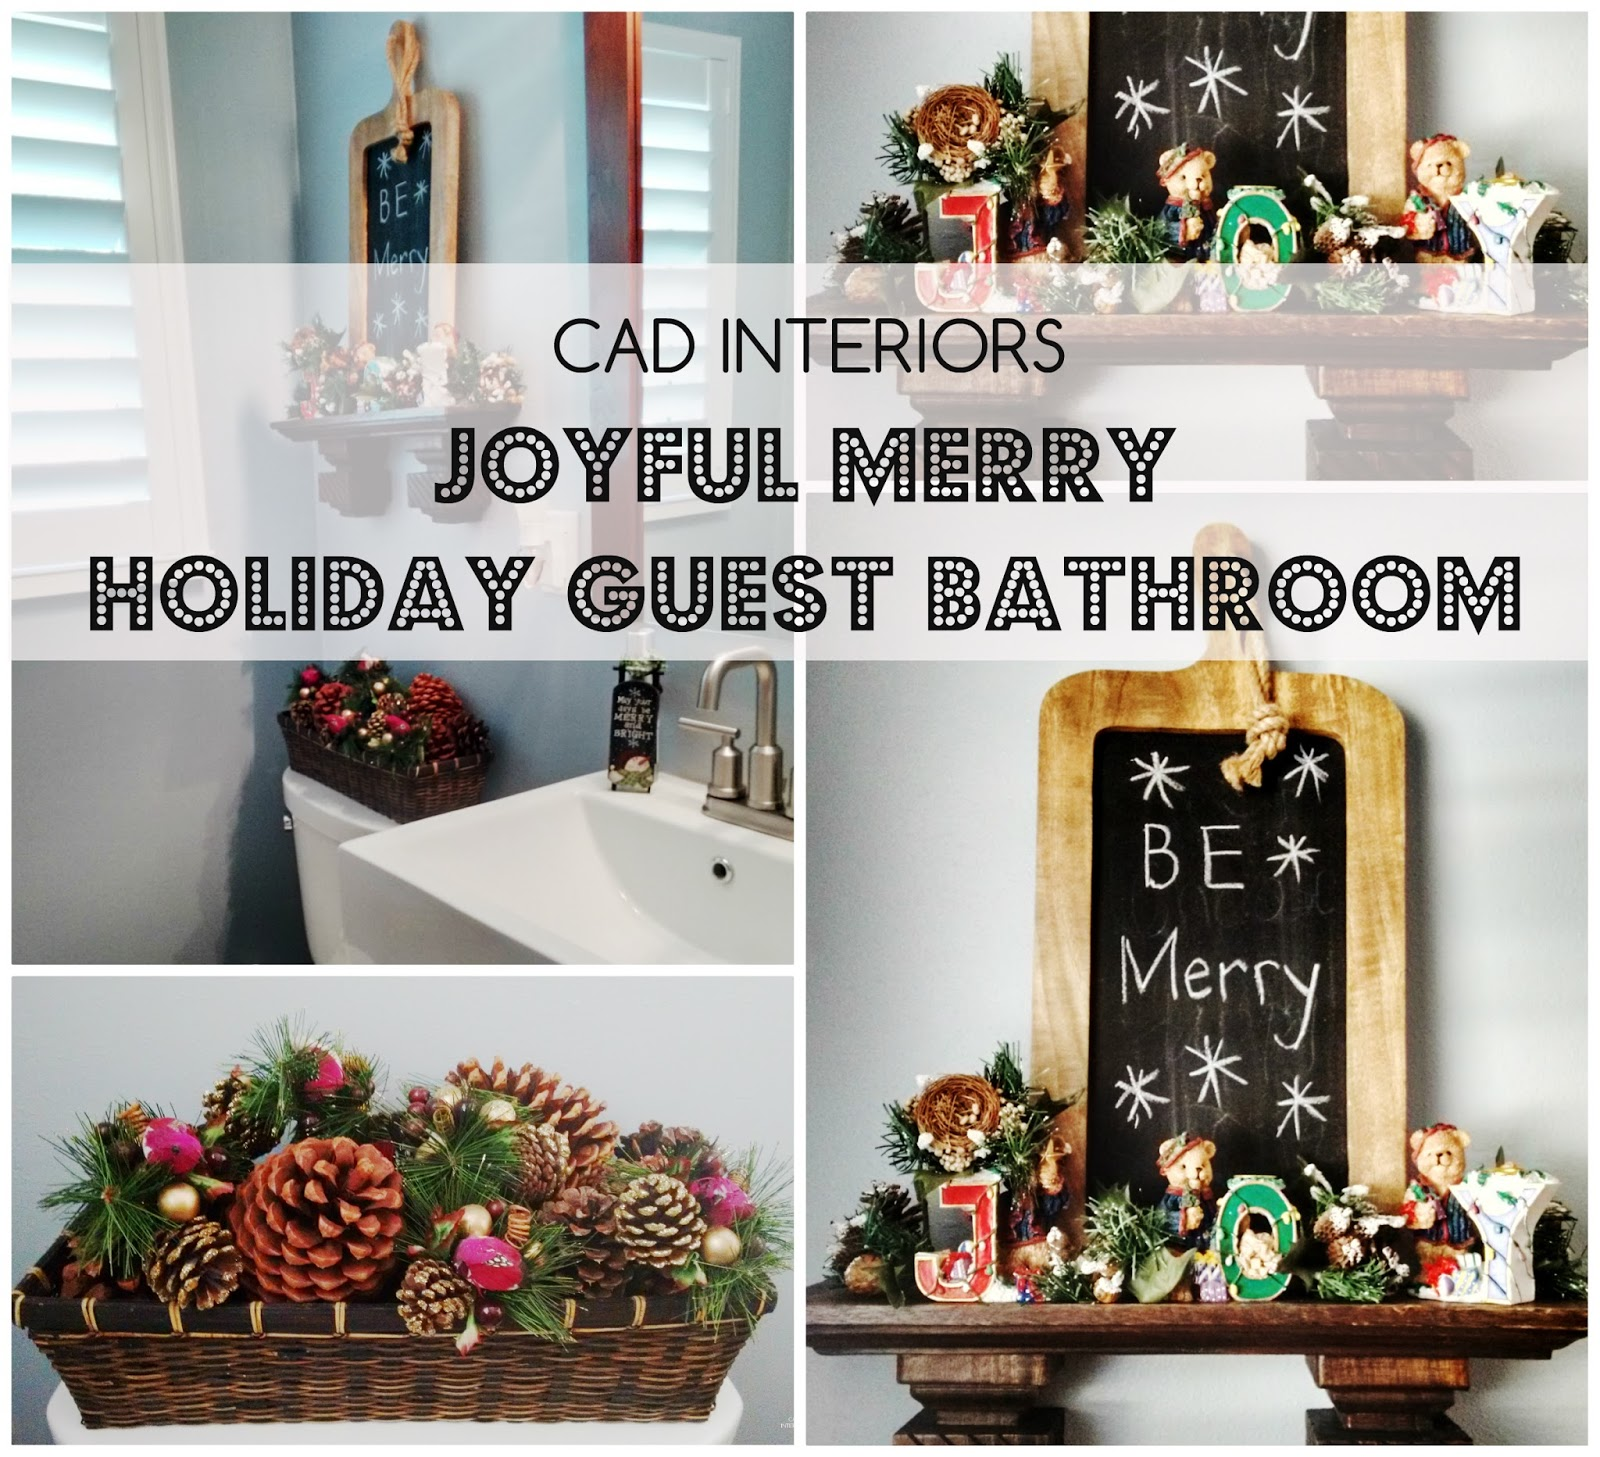 CAD INTERIORS Christmas decorations 2015